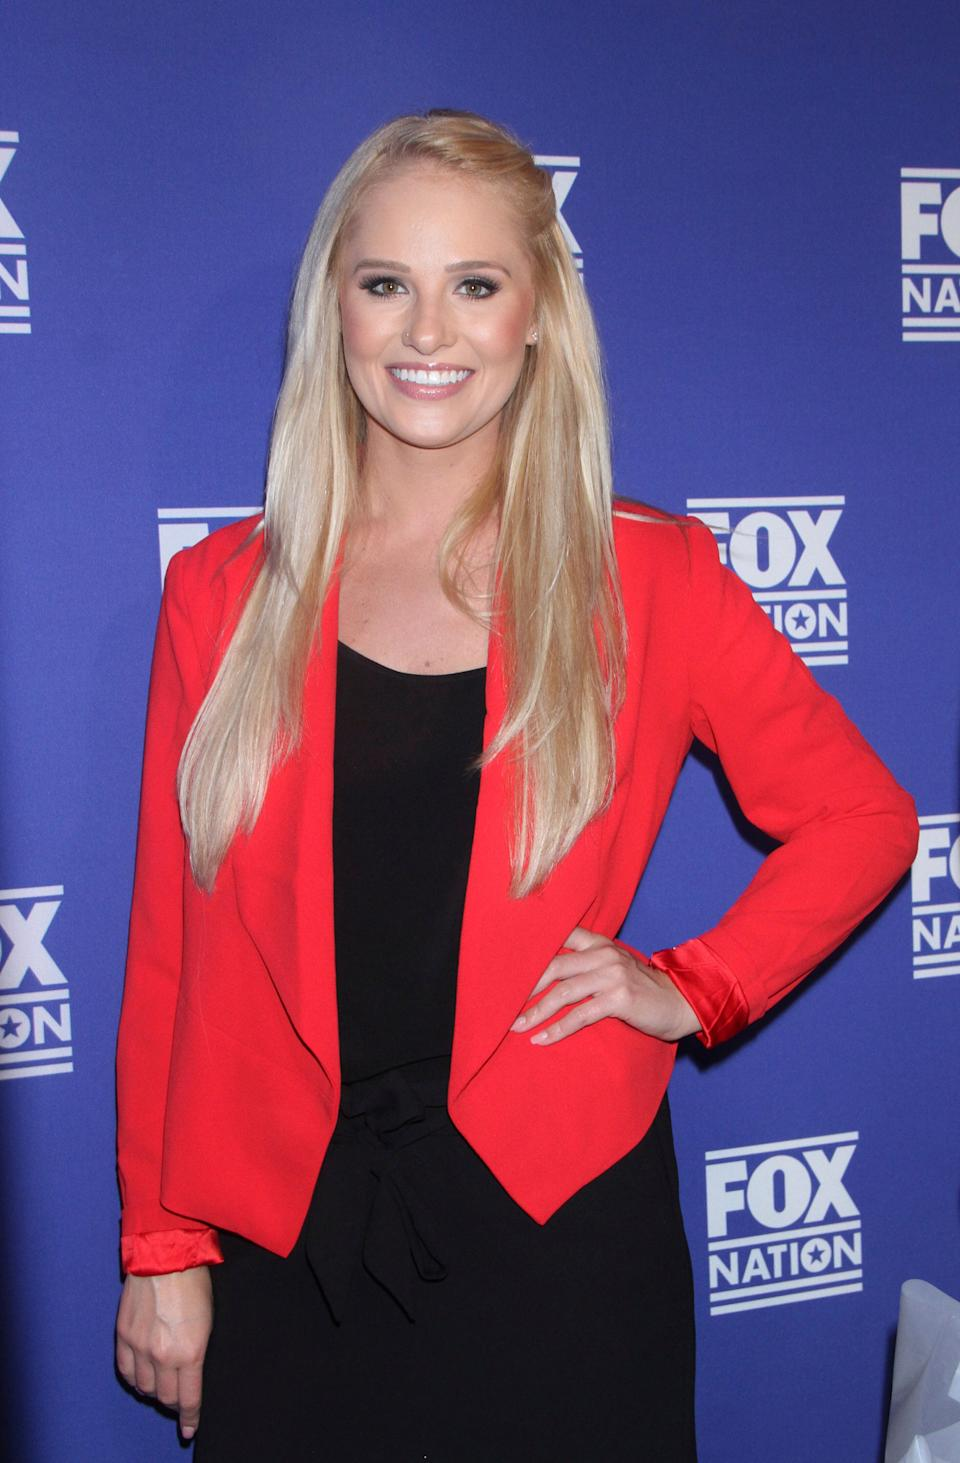 NEW YORK, NY - November 06: Tomi Lahren hosts Fox Nation Election Experience tent with a preview for a new subscription service at Fox Plaza in New York City on November 06, 2018. Credit: RW/MediaPunch /IPX